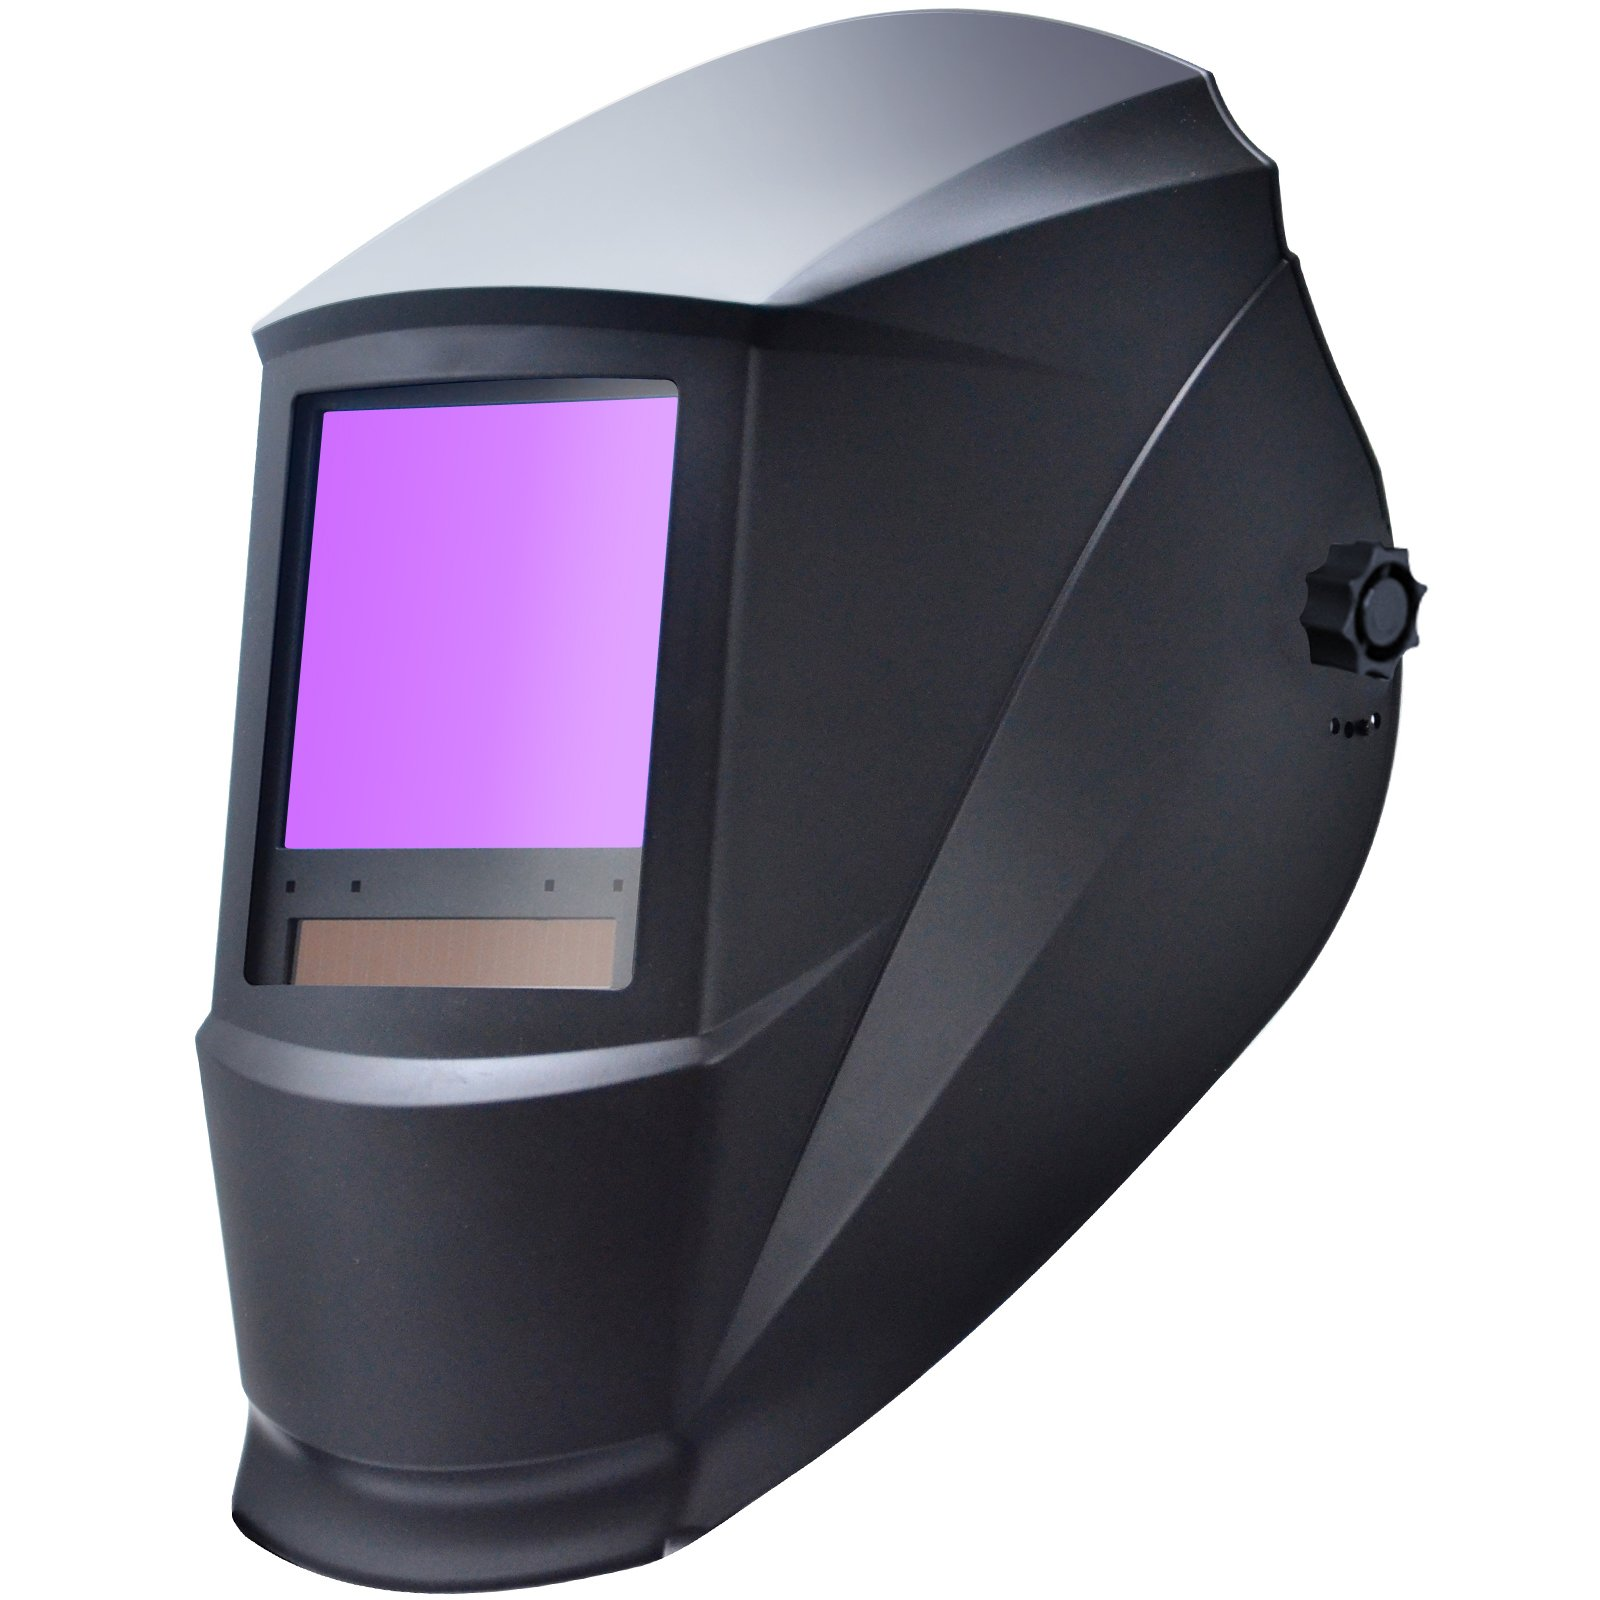 Antra AH7-860-0000   Solar Power Auto Darkening Welding Helmet AntFi X60-8 Jumbo Viewing Size 3.78''X3.5'' Variable Shade 4/5-9/9-13